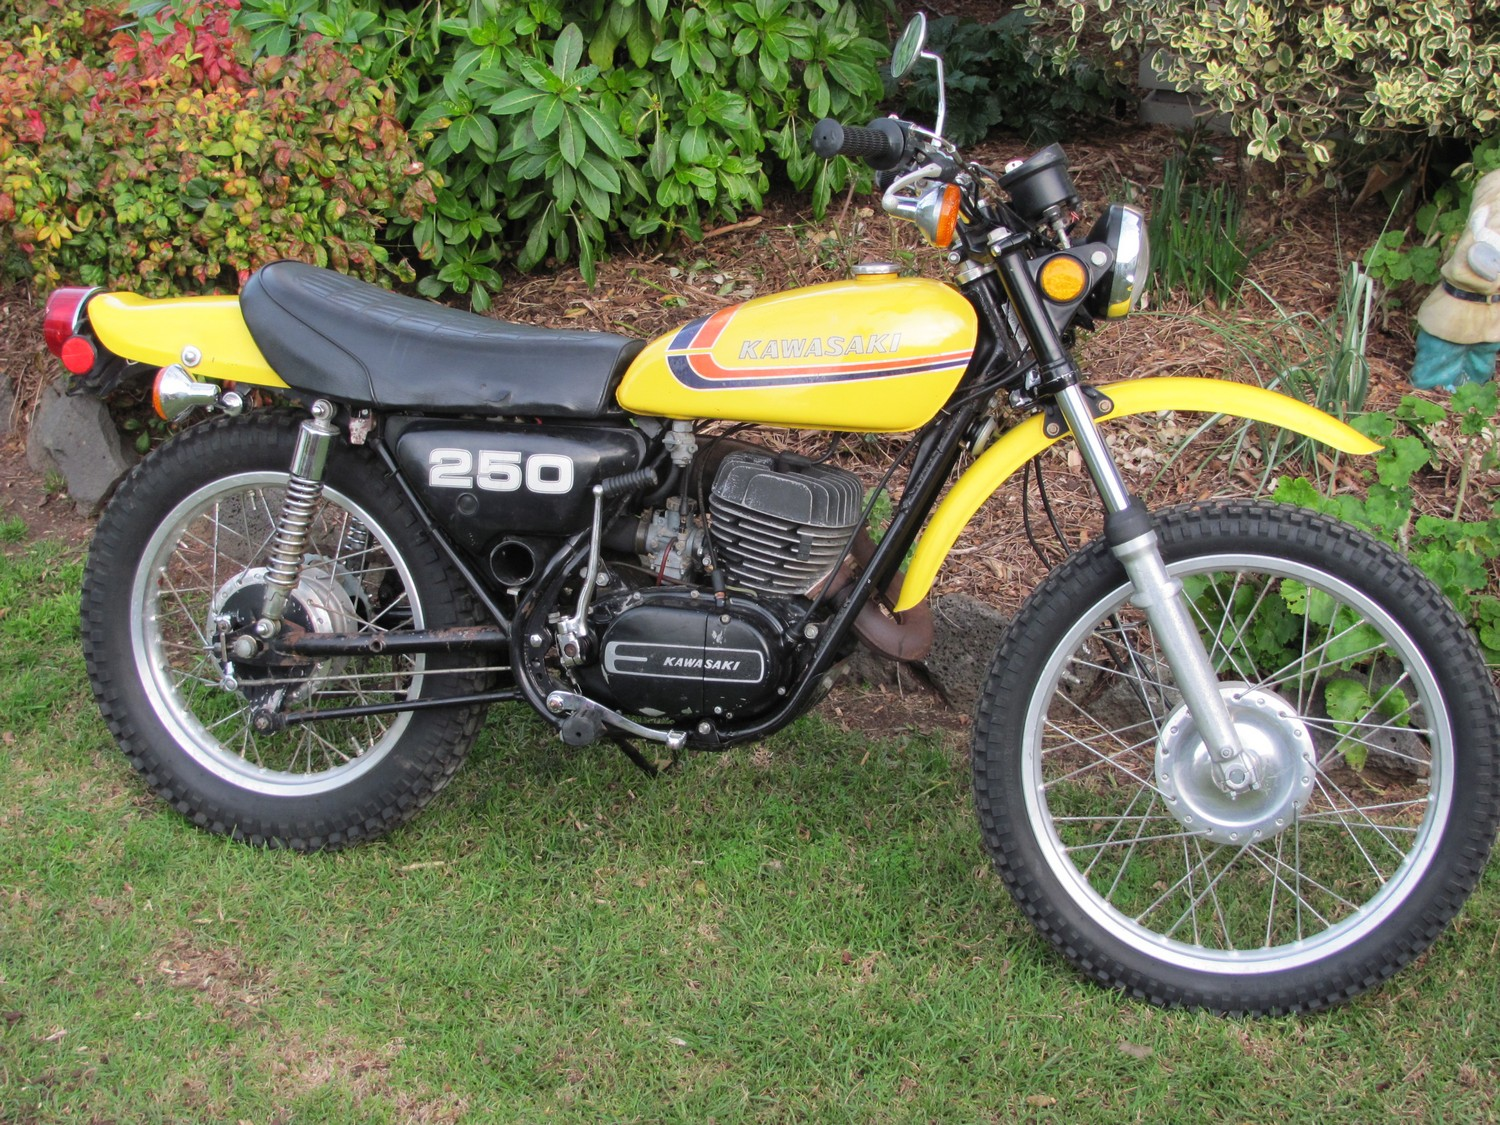 Classic Yamaha Dirt Bikes For Sale